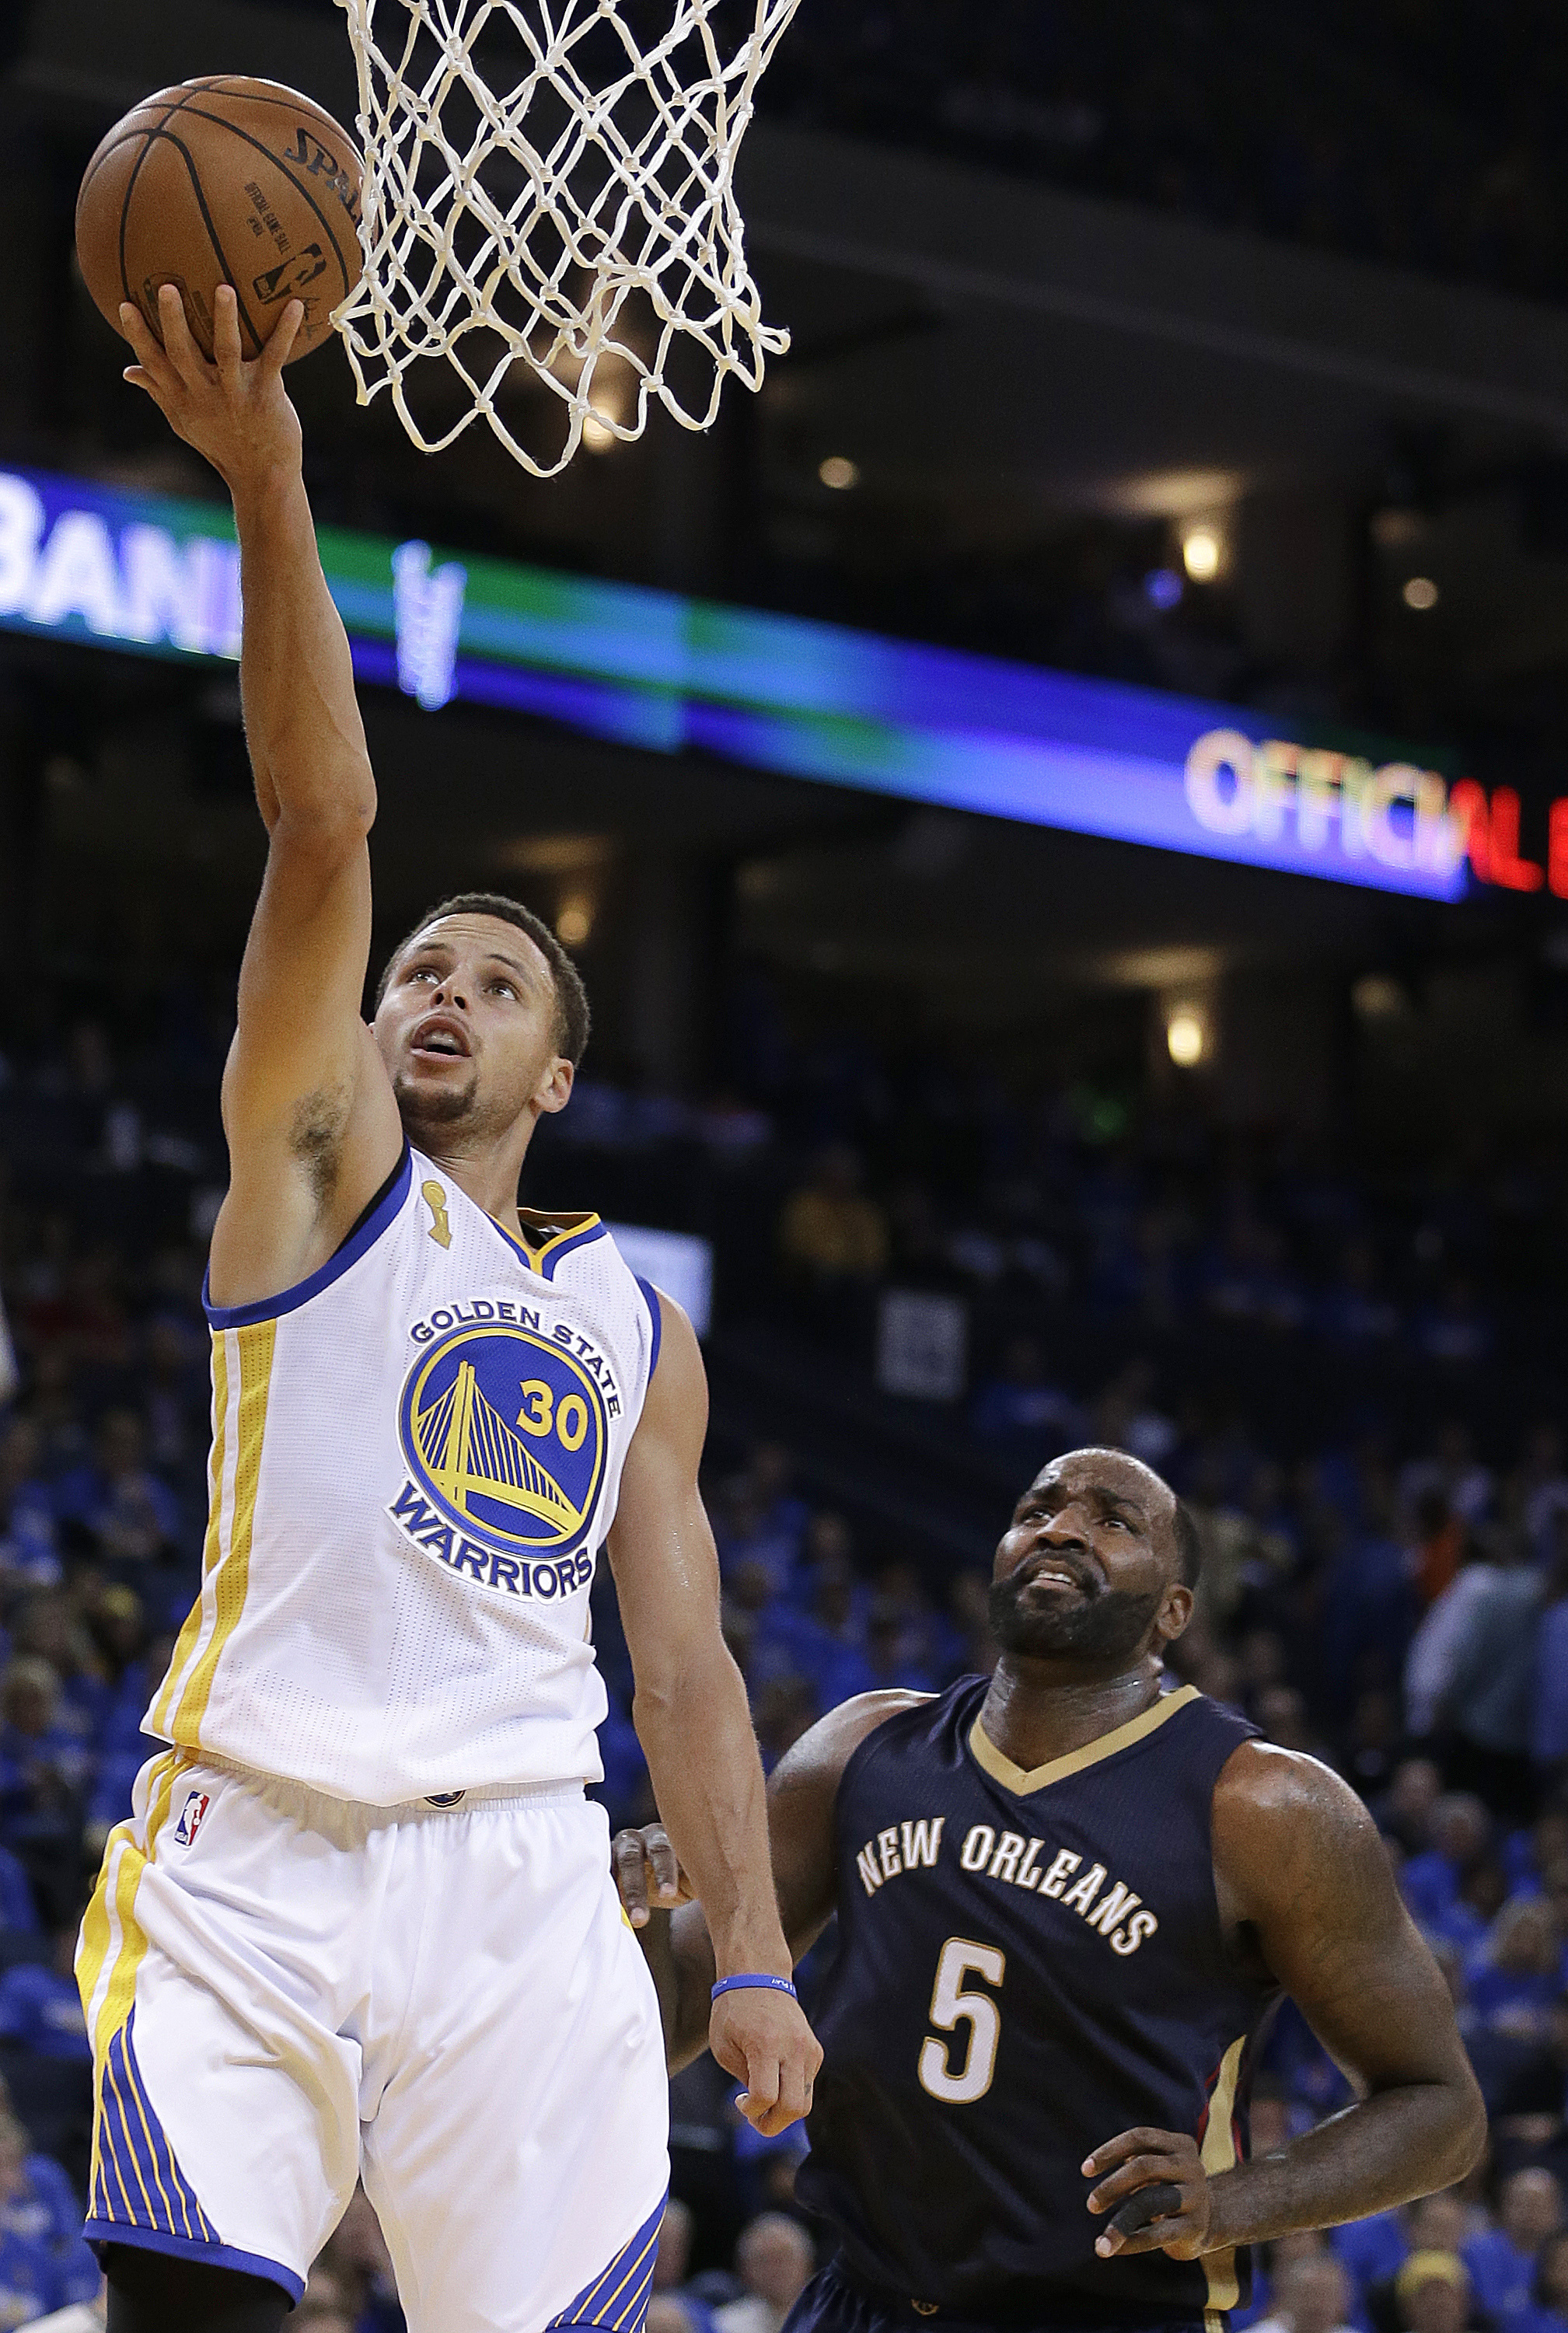 Golden State Warriors' Stephen Curry, left, lays up a shot in front of New Orleans Pelicans' Kendrick Perkins (5) during the second half of an NBA basketball game Tuesday, Oct. 27, 2015, in Oakland, Calif. (AP Photo/Ben Margot)